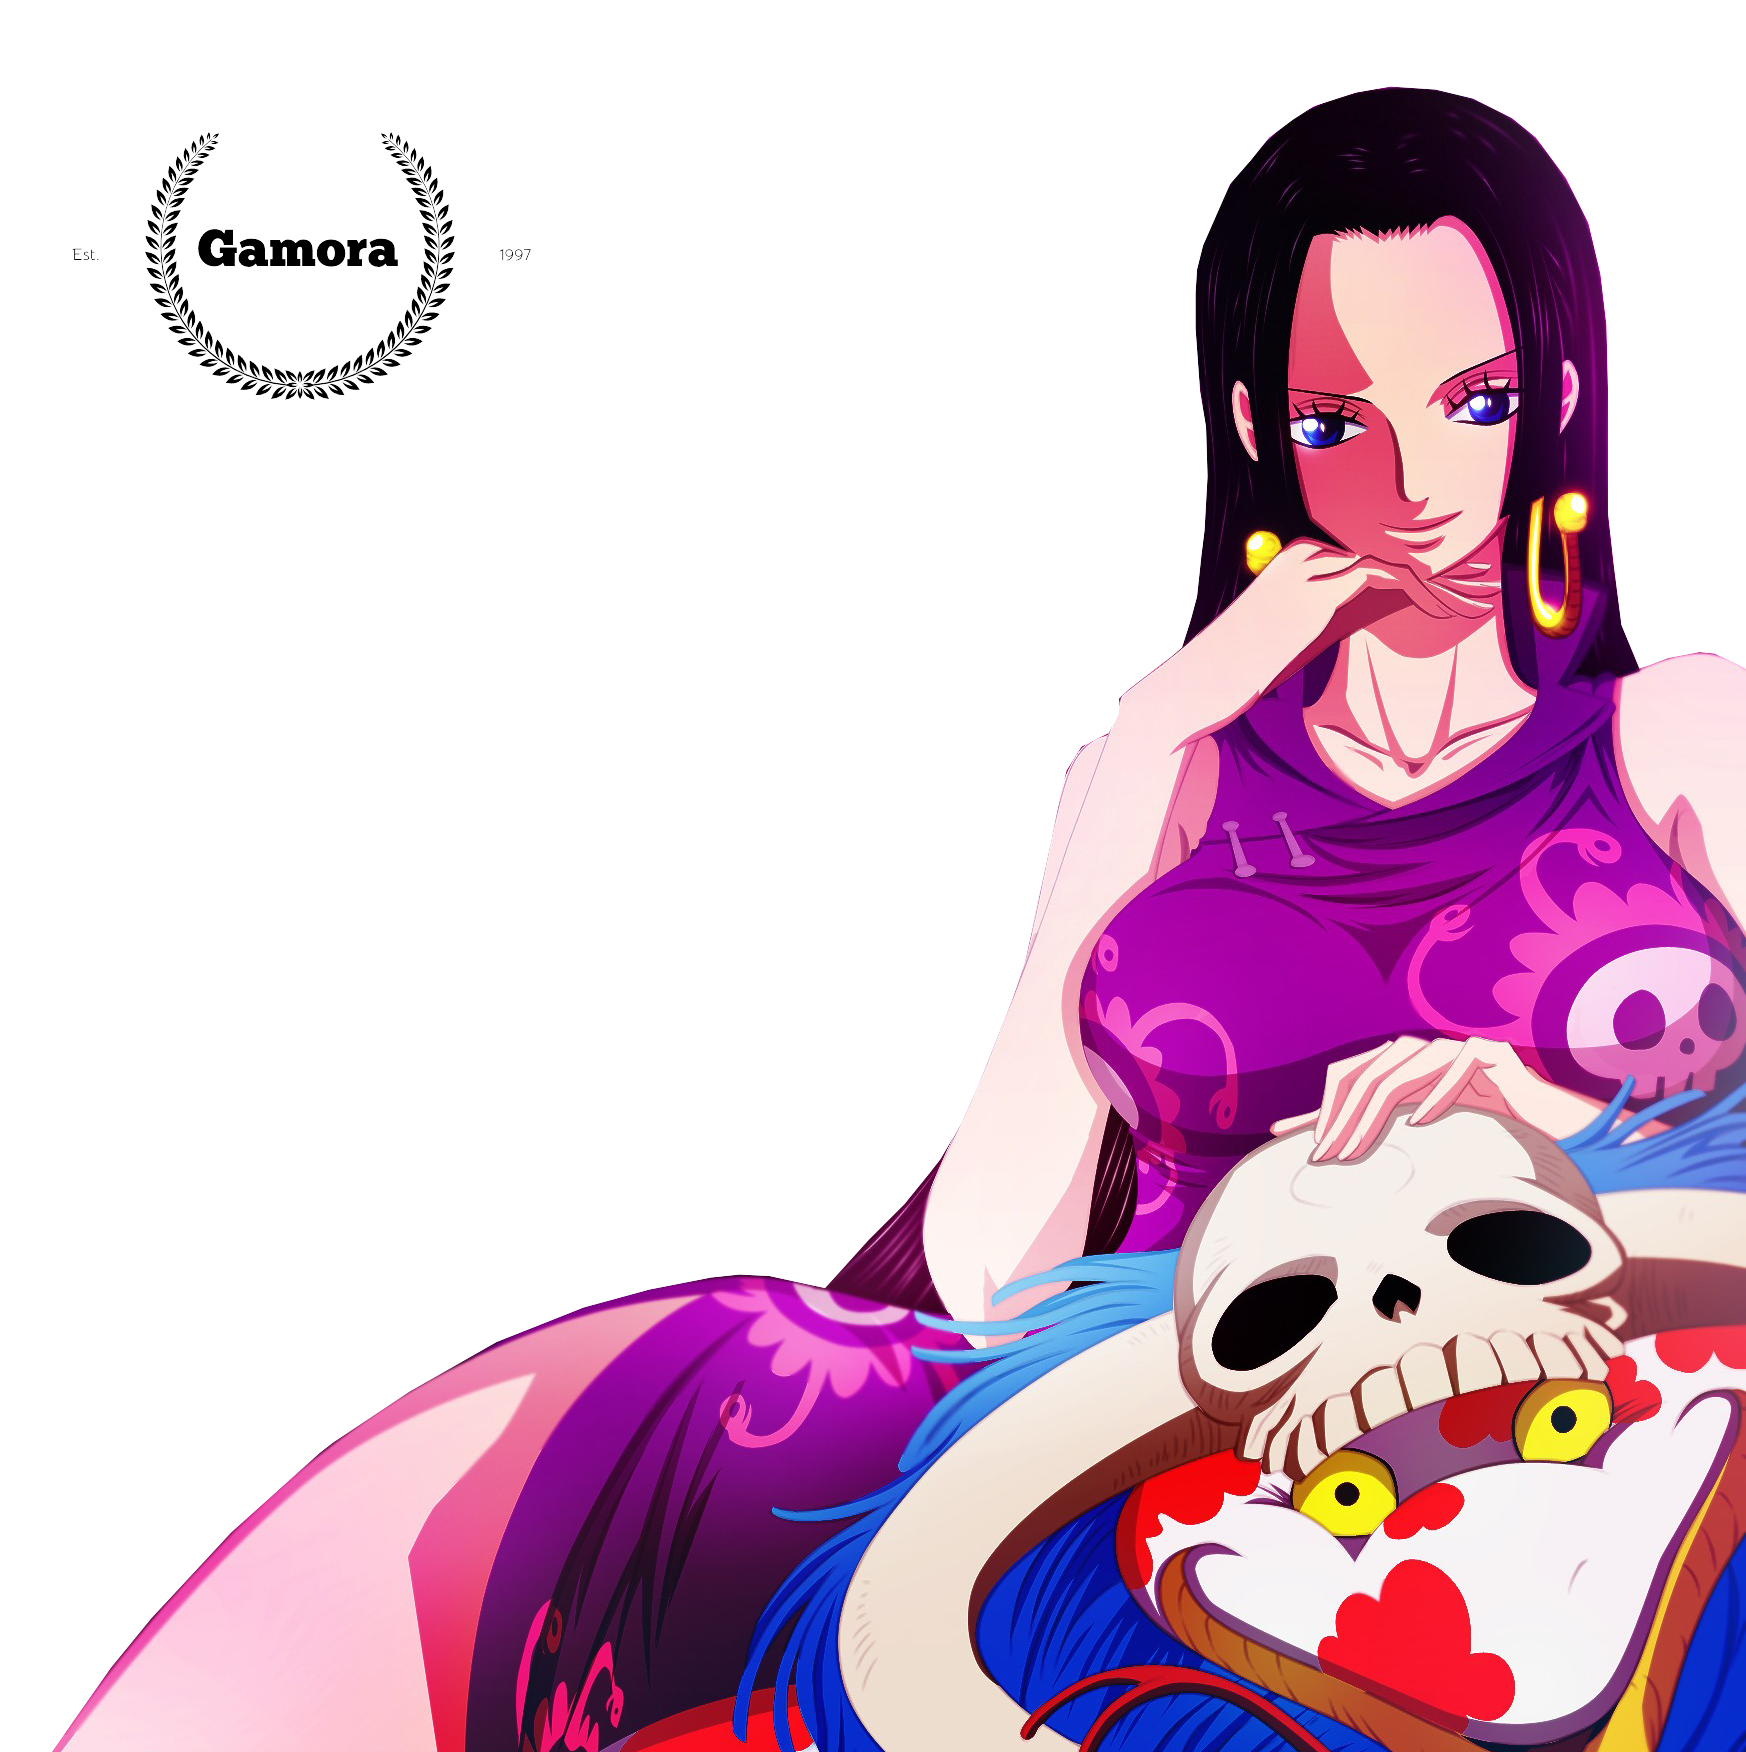 Anime One Piece Wallpaper Hd Boa Hancock By I Sanx By Magamora13 On Deviantart